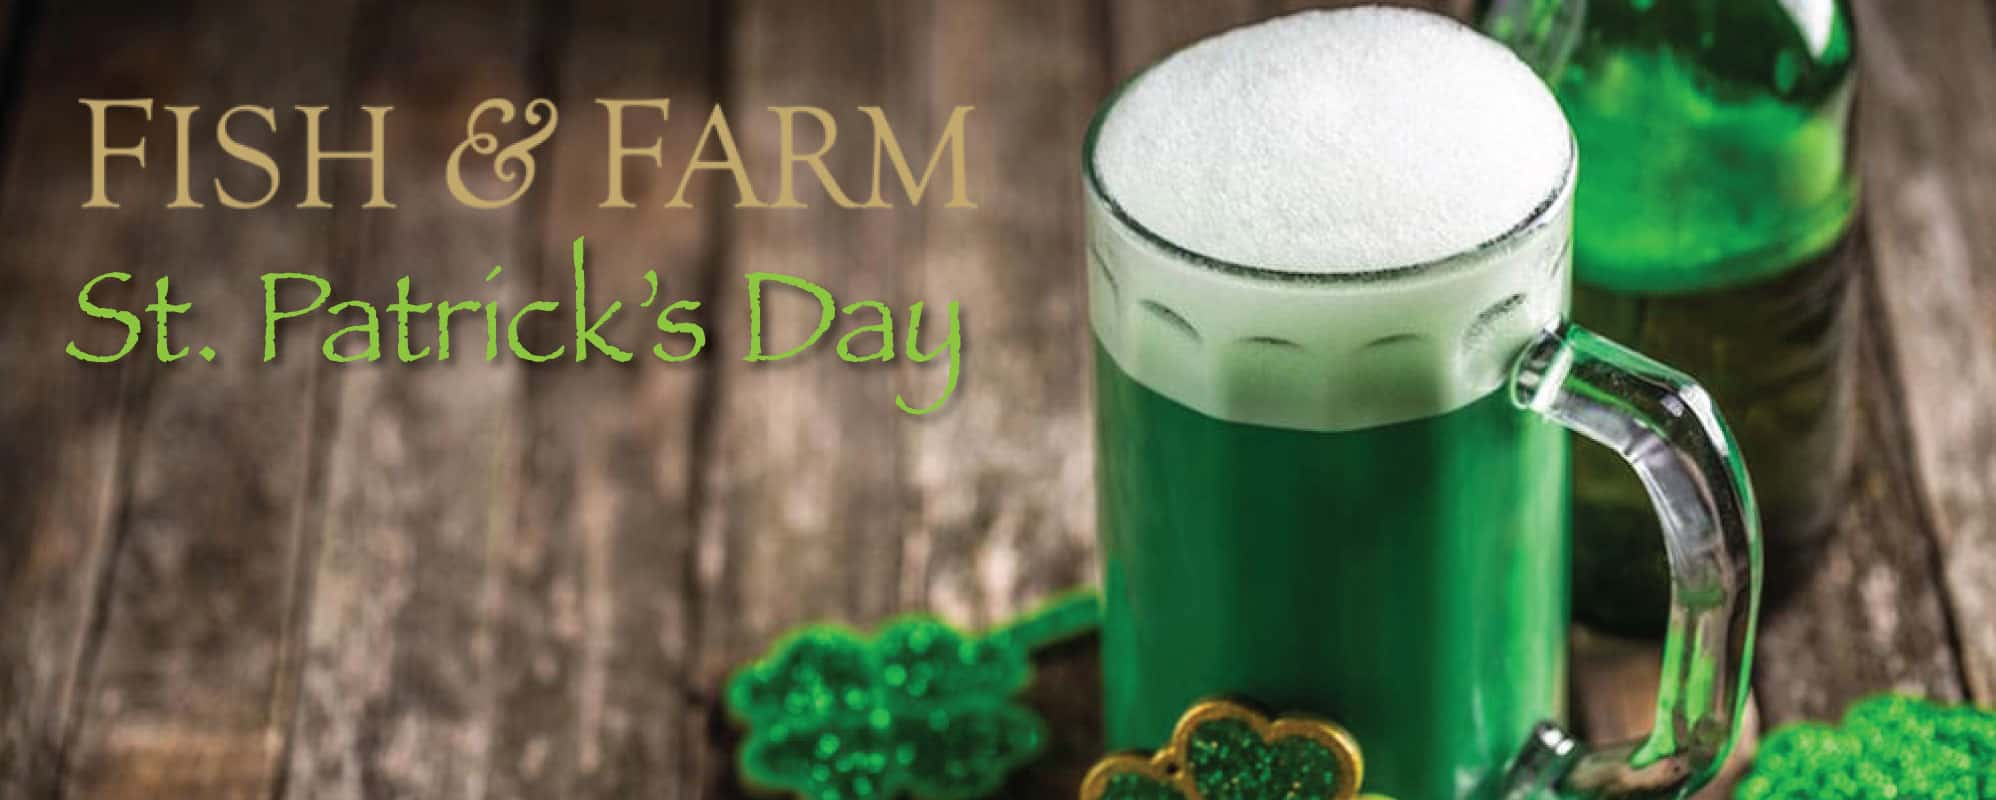 St. Patrick's Day at Fish & Farm